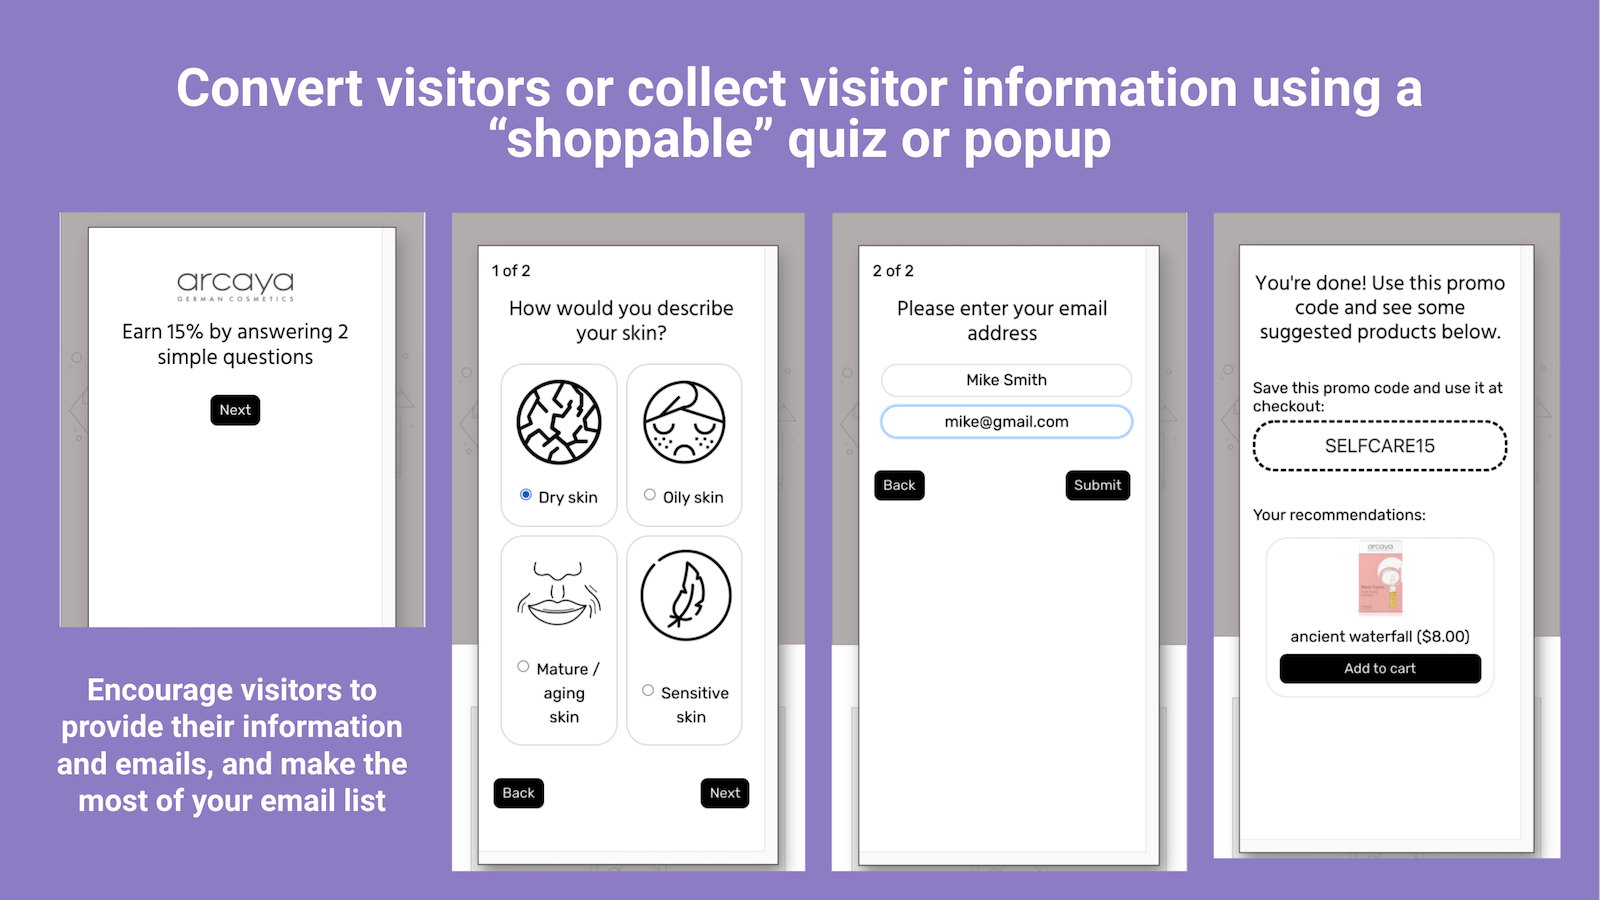 Benefits of a shoppable quiz or popup